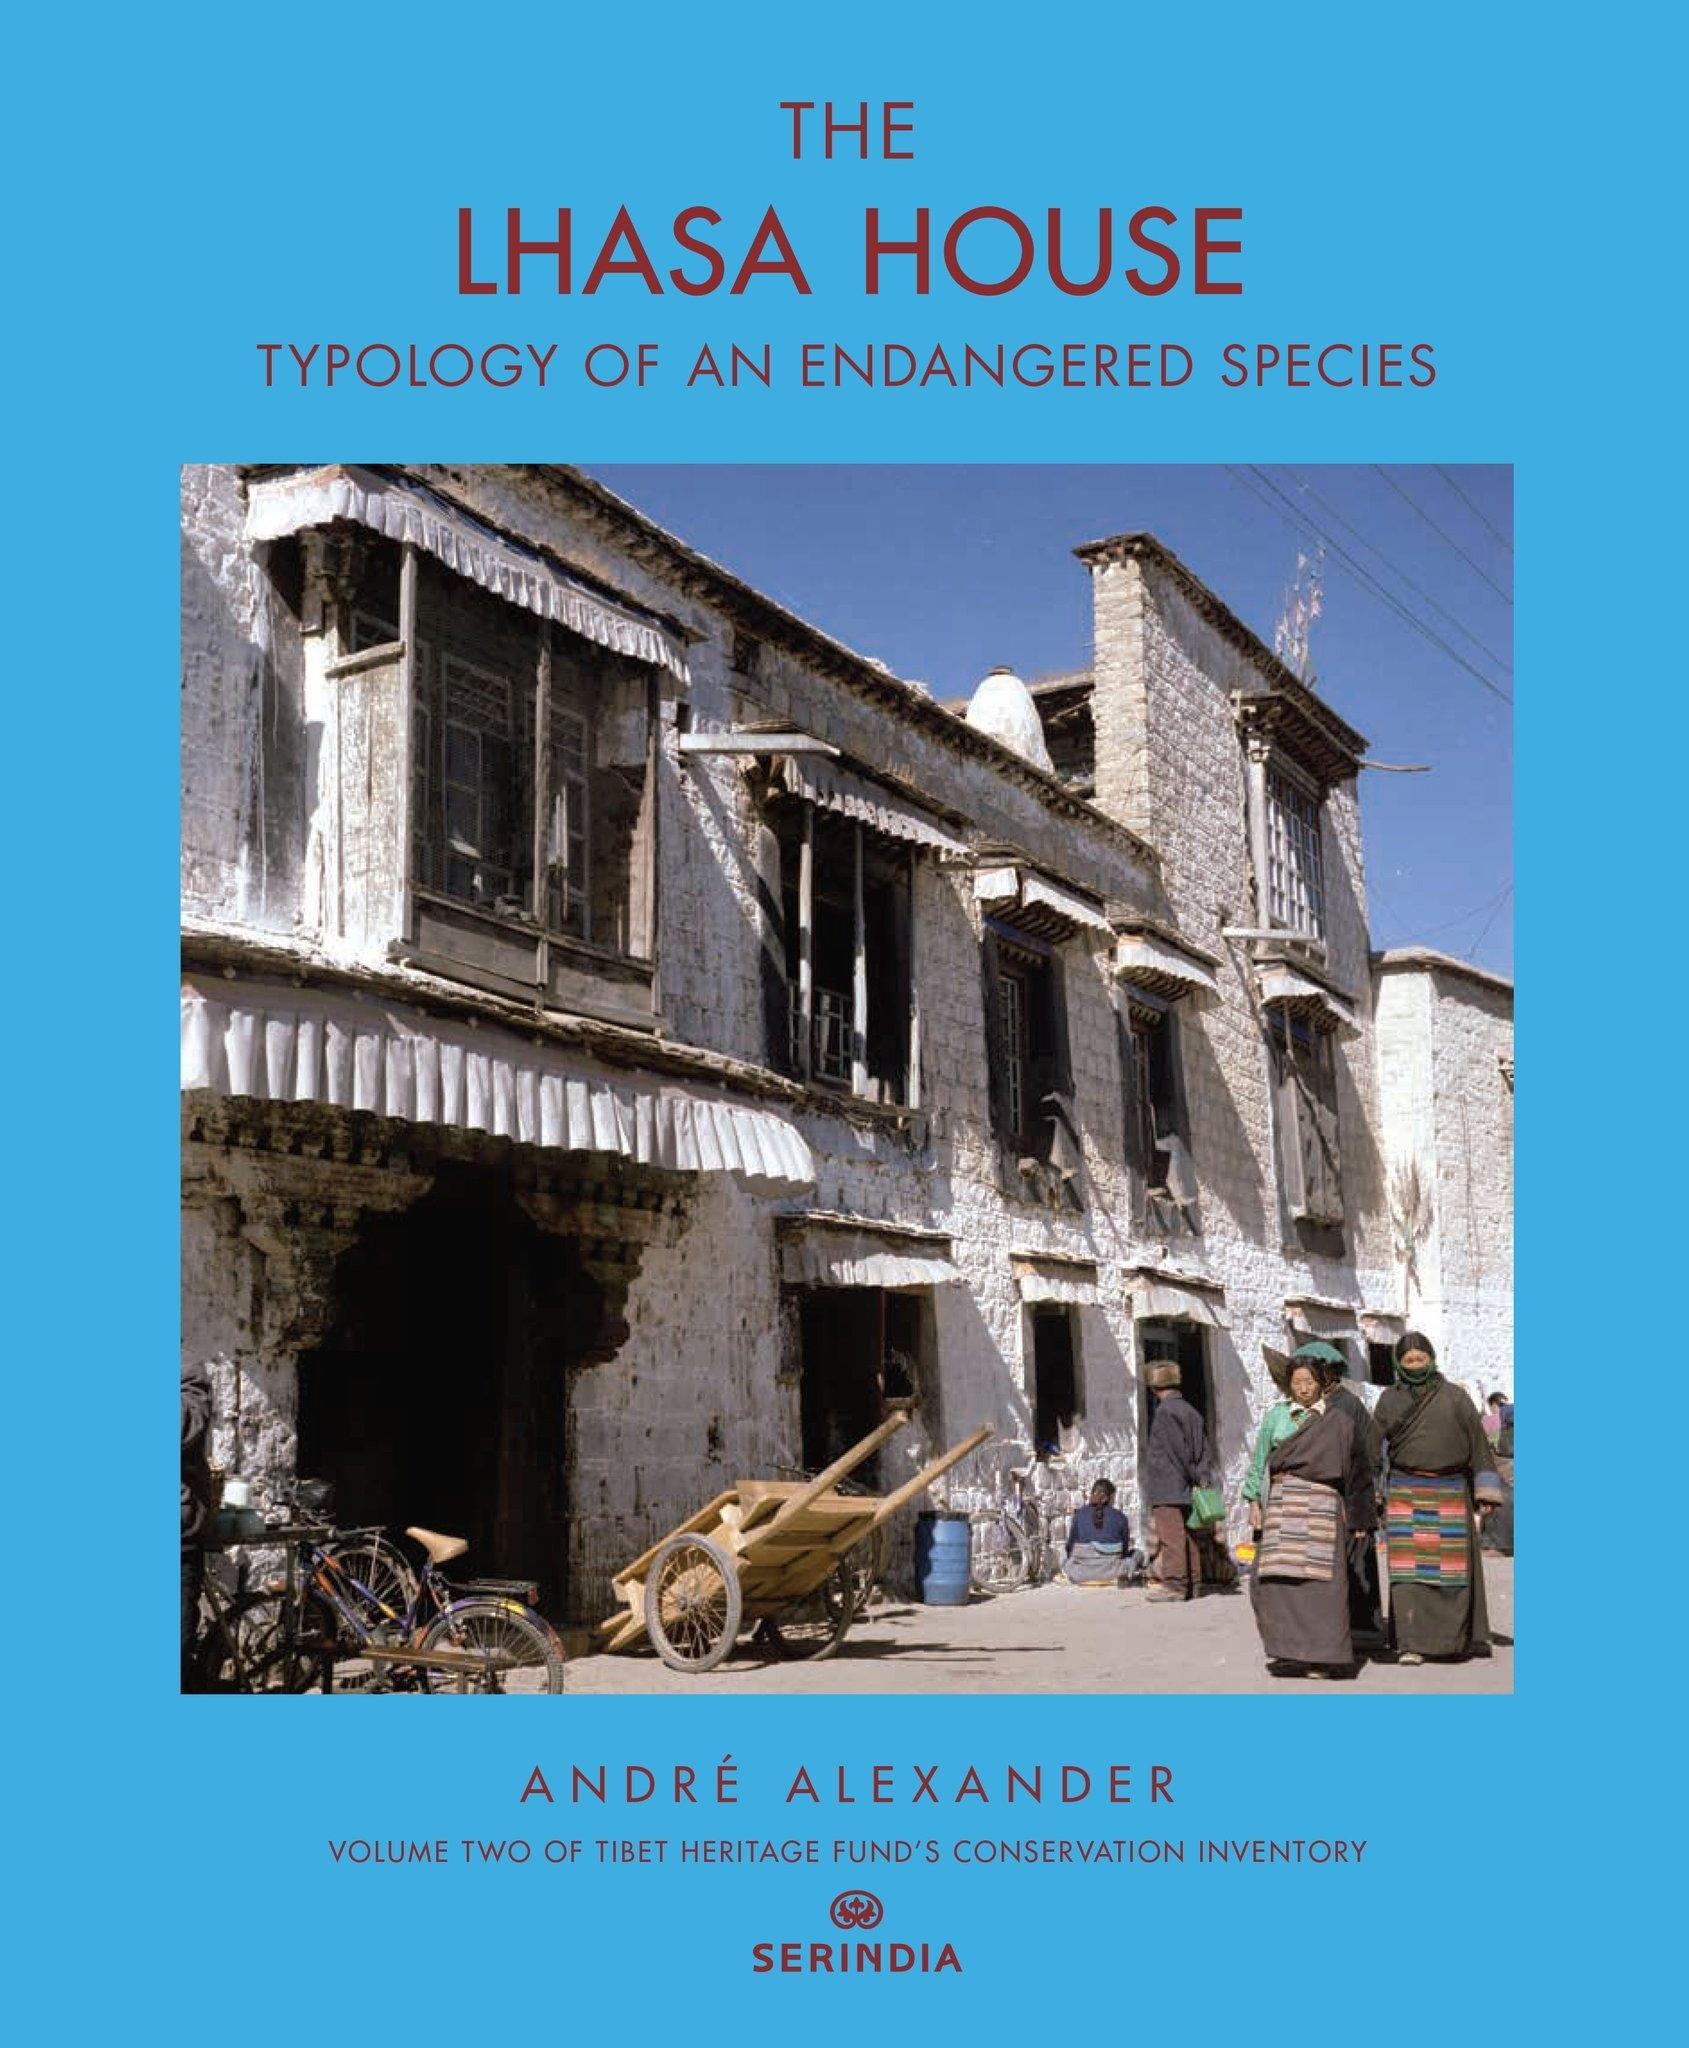 LHASA HOUSE. TYPOLOGY OF AN ENDANGERED SPECIES